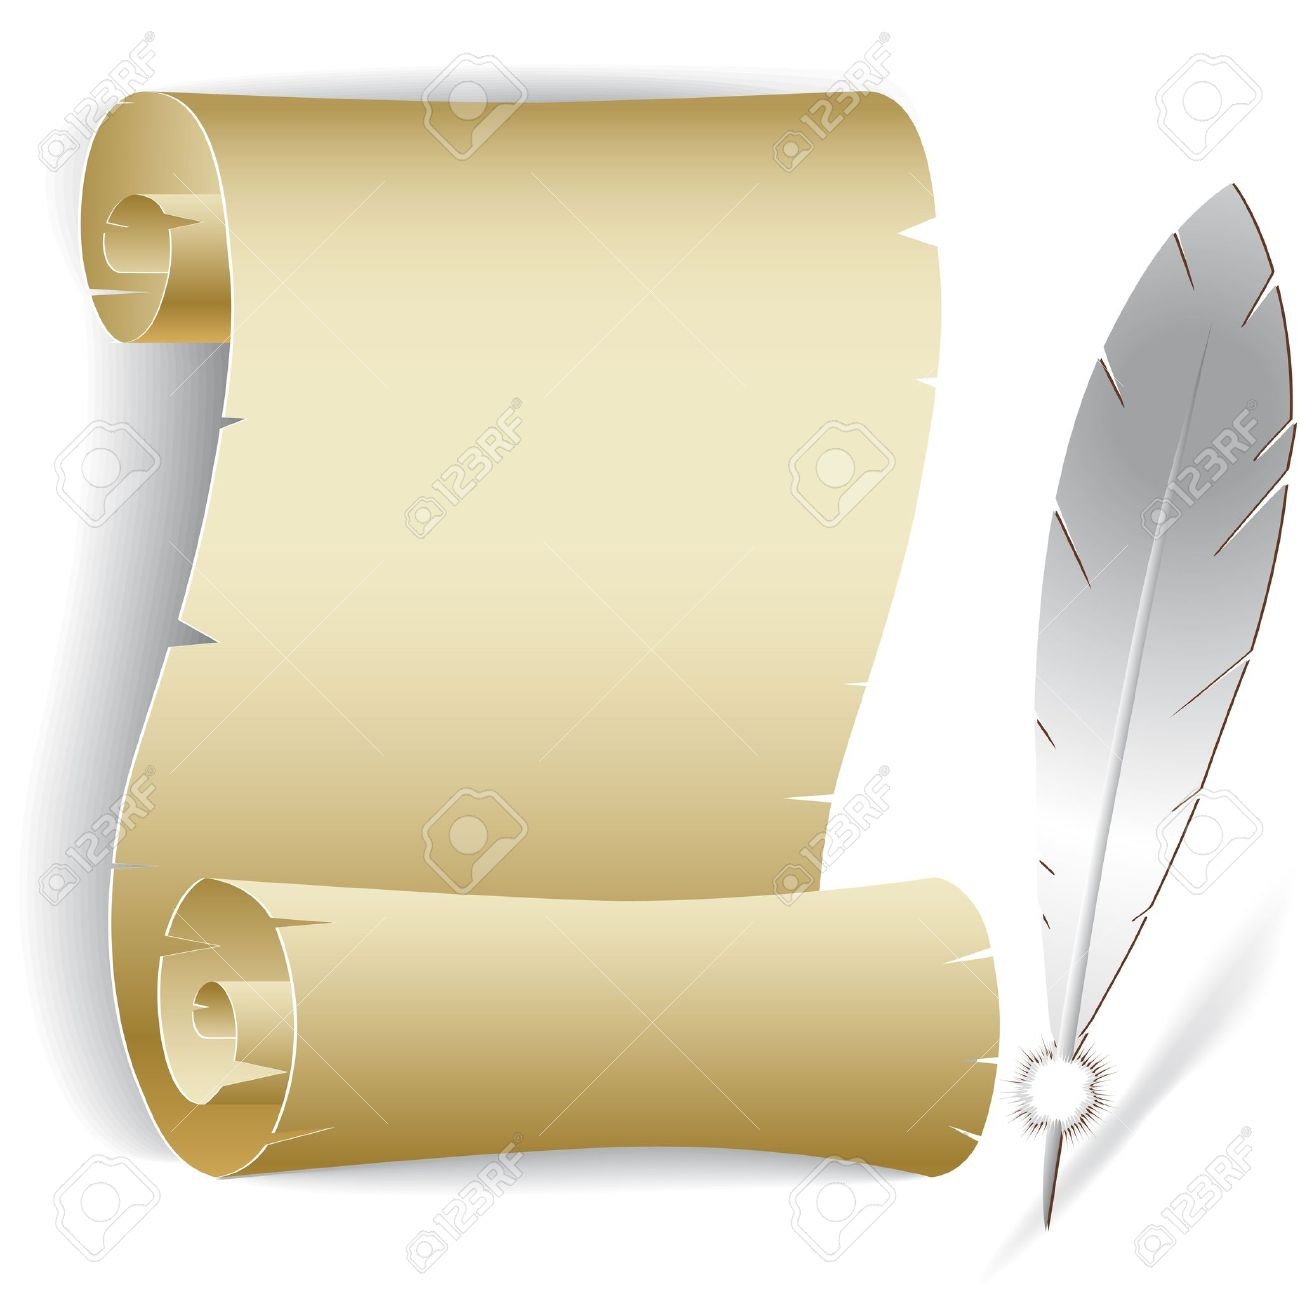 Old Letter clipart Download paper 85KB Old collection